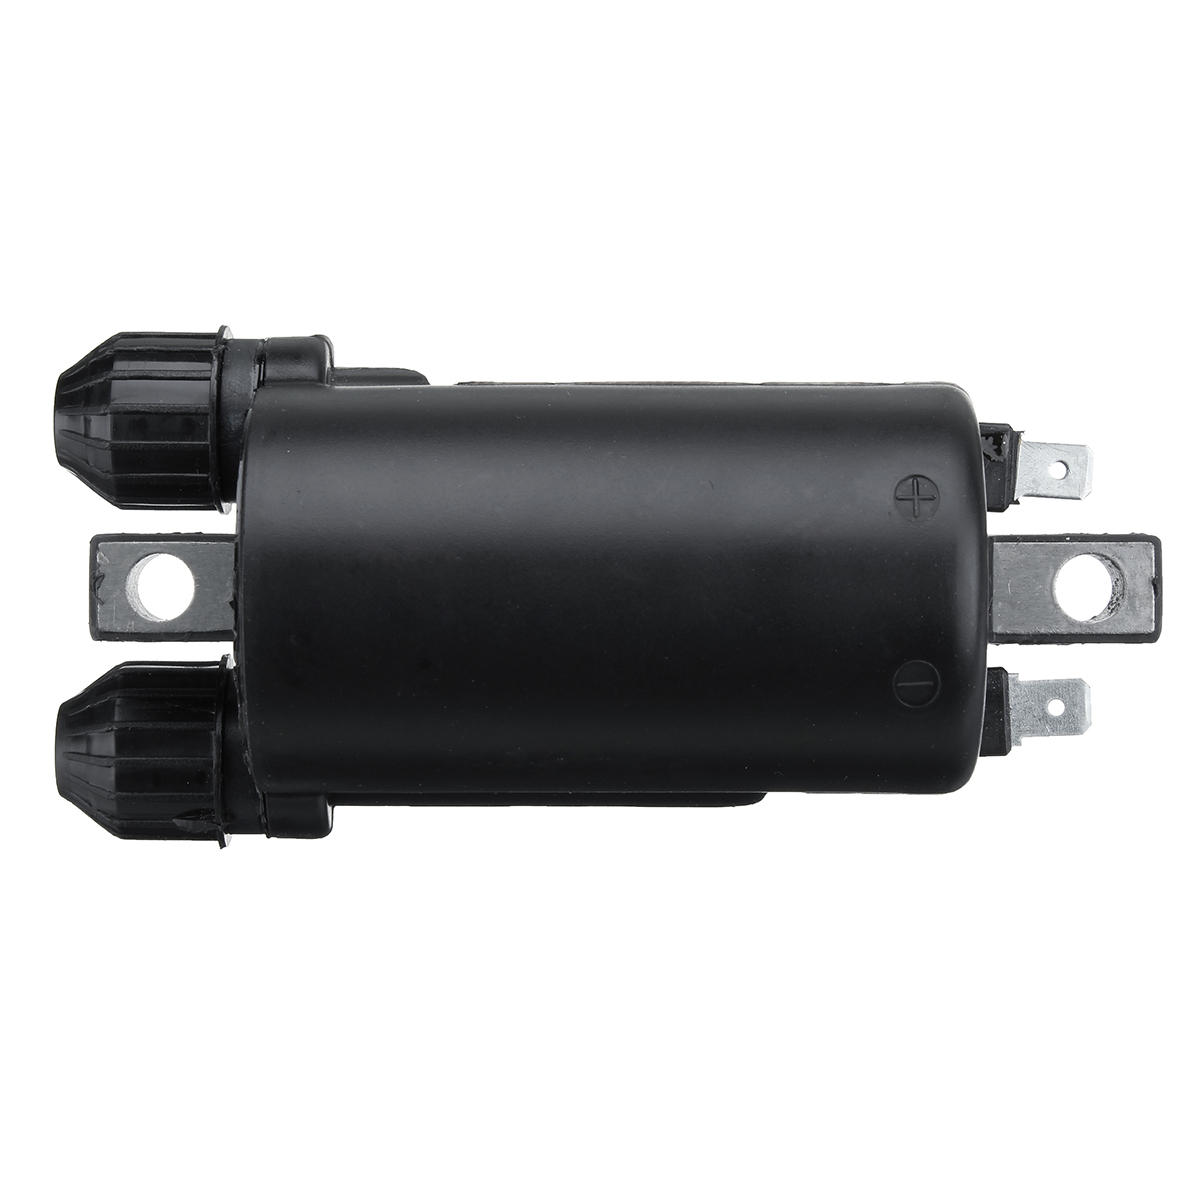 Motorcycle ignition coil external for honda cacb cbrglntpcst 600x600 600x600 600x600 fandeluxe Choice Image